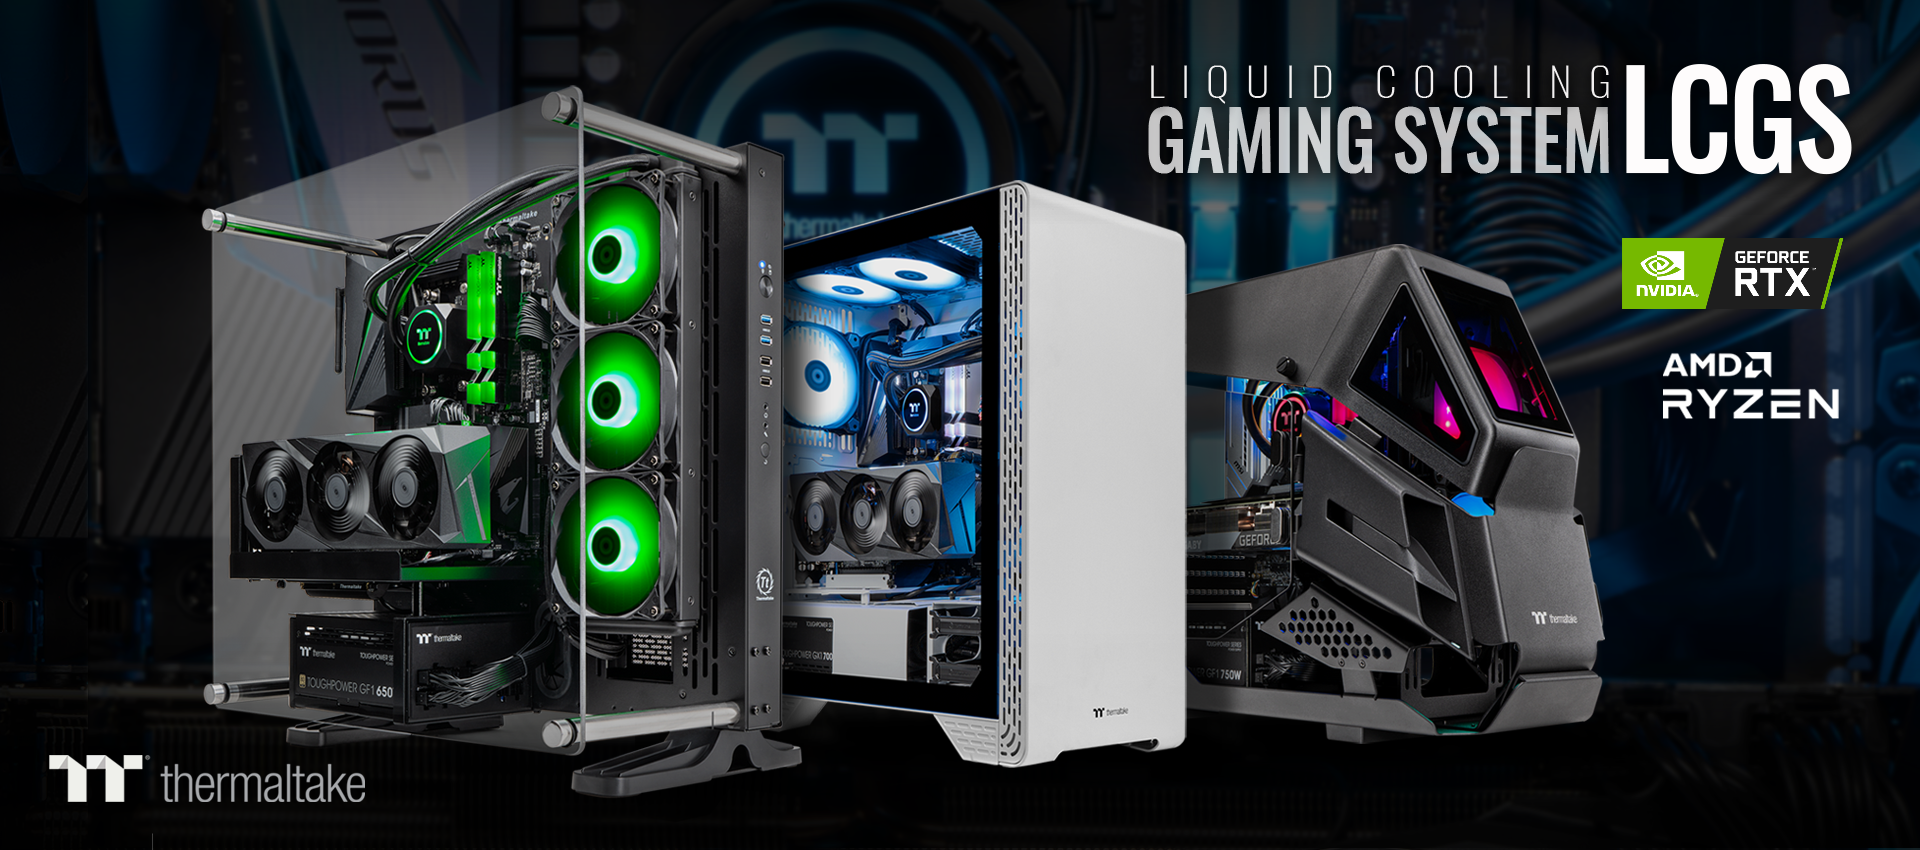 Liquid Cooling Gaming System LCGS